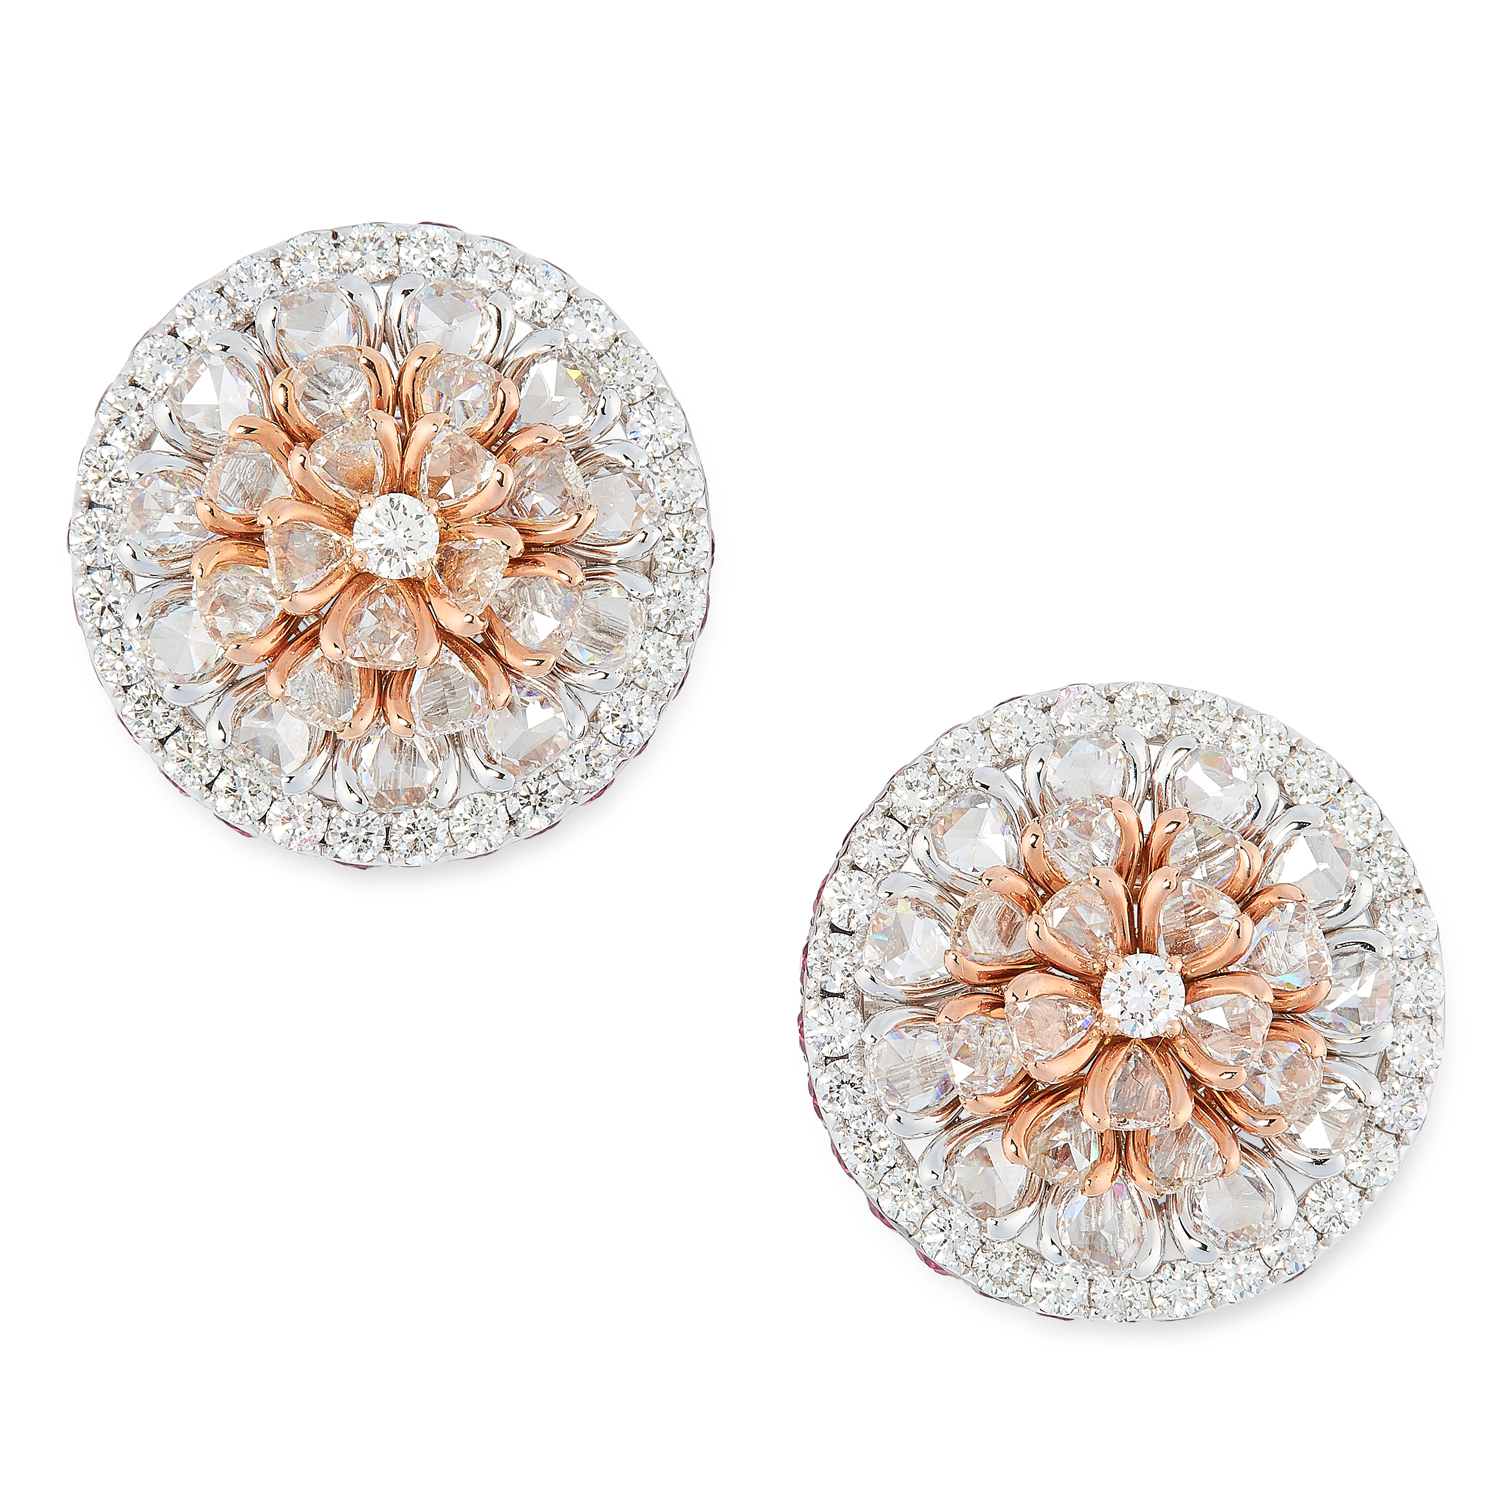 A PAIR OF DIAMOND AND RUBY CLUSTER EARRINGS each comprising a cluster of rose and round cut diamonds